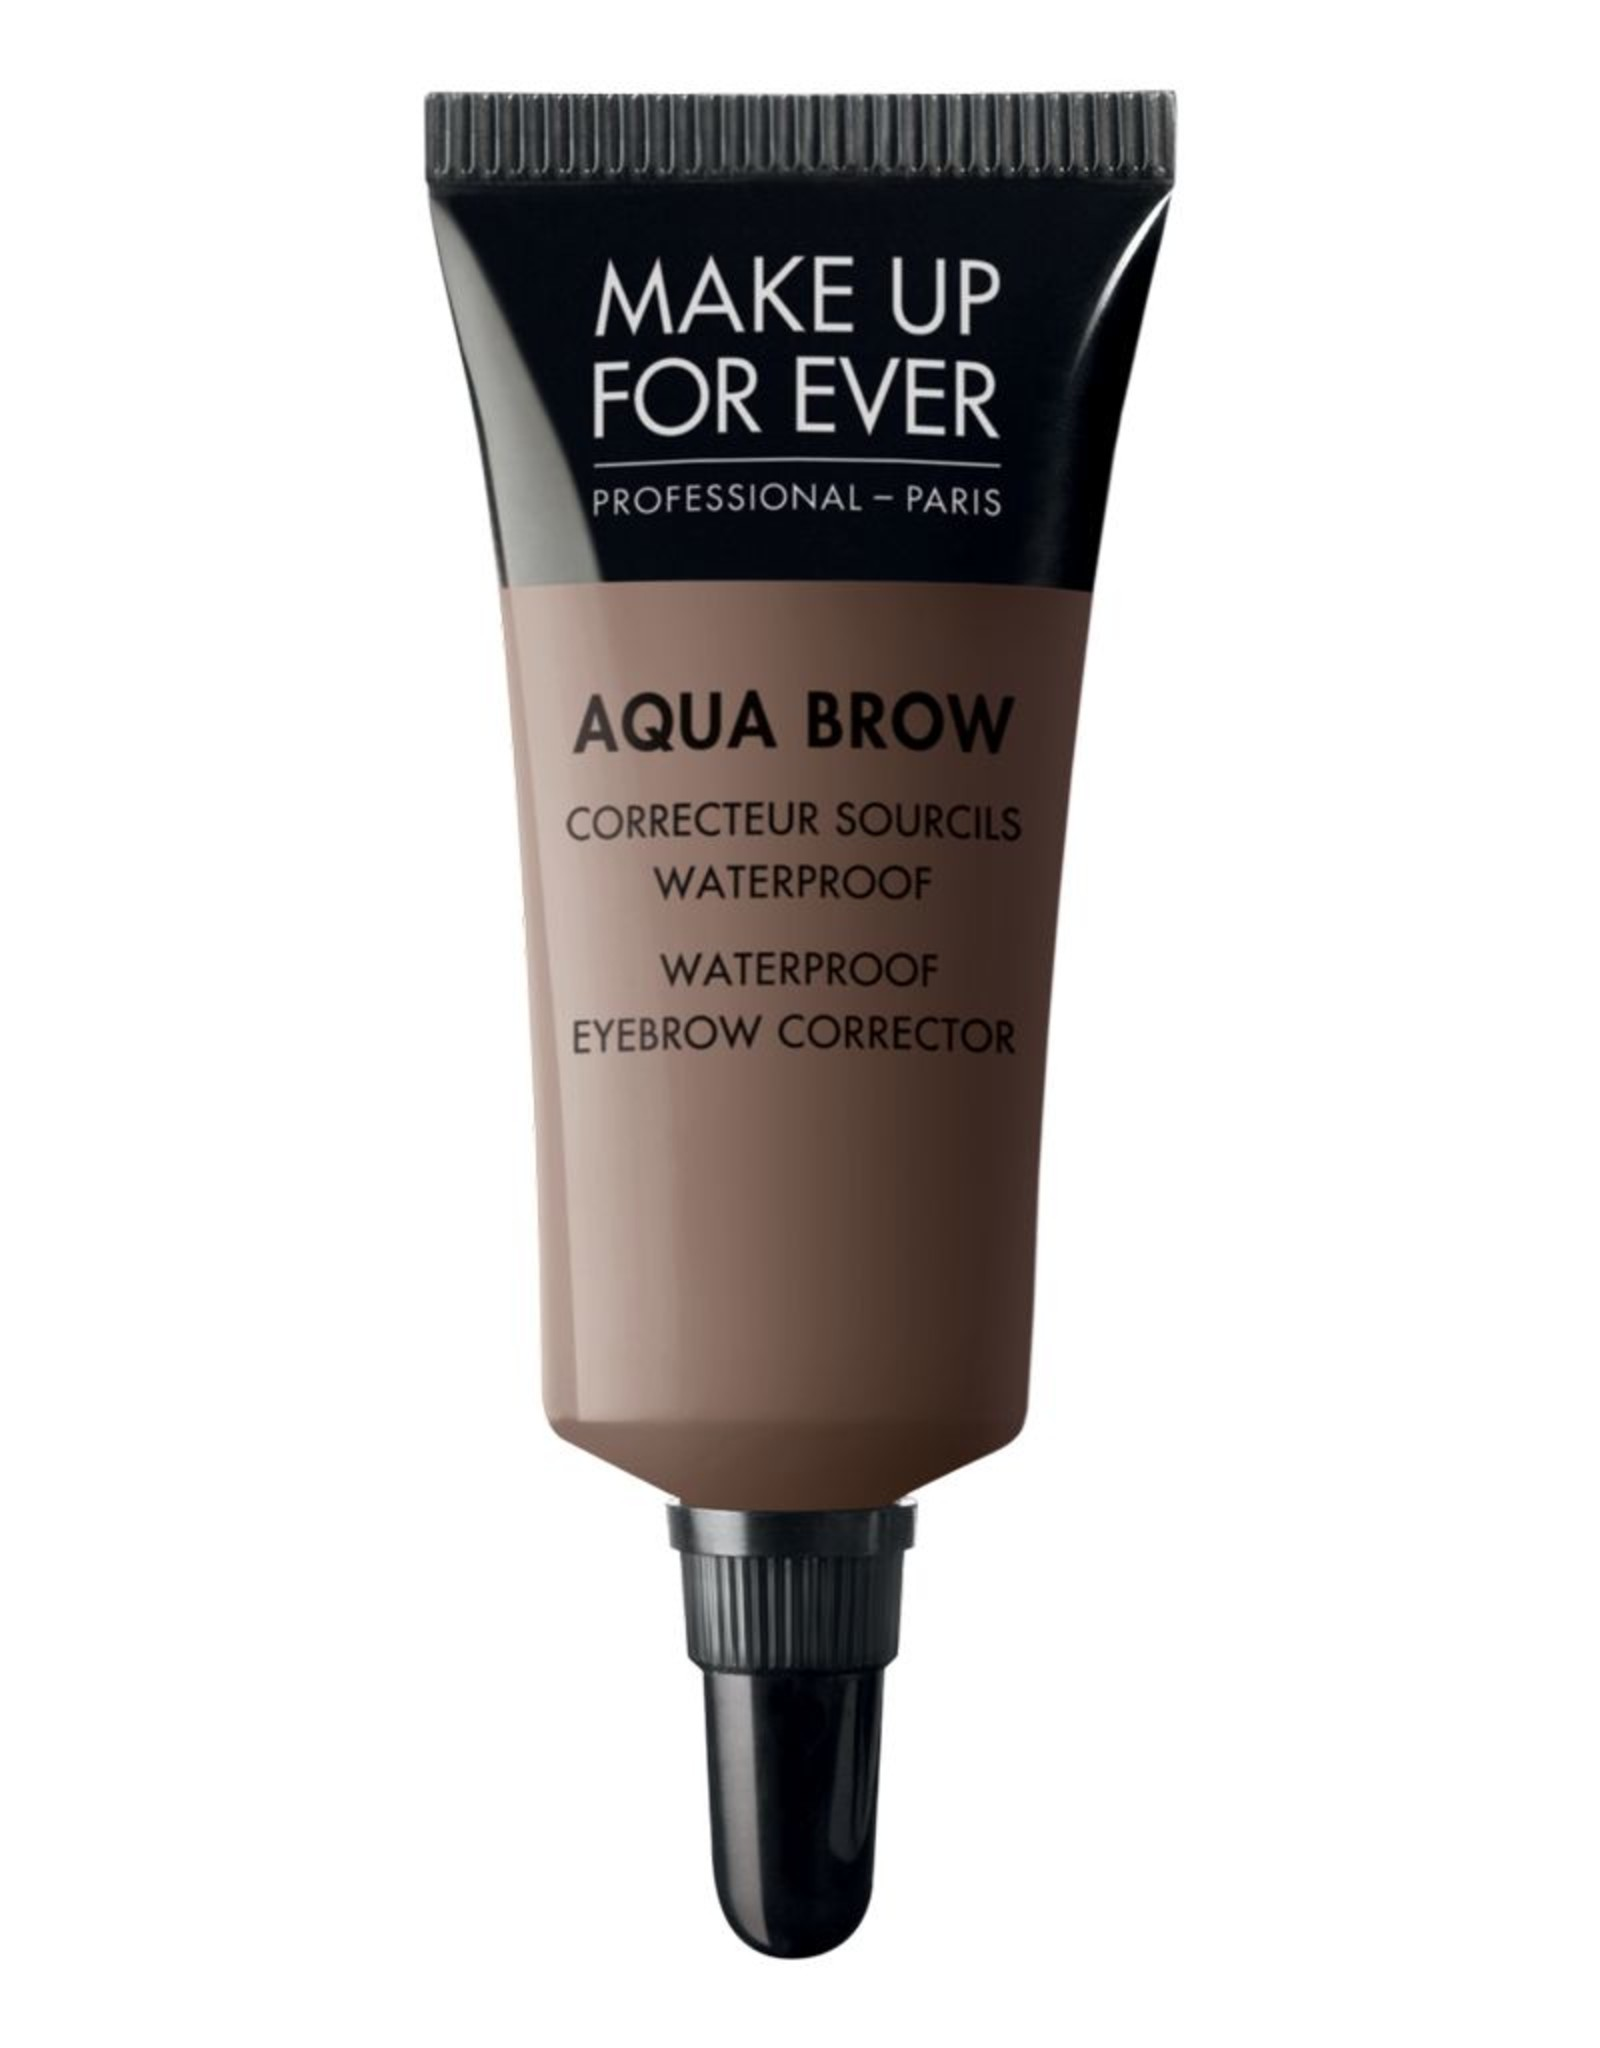 MUFE AQUA BROW 7ml (recharge uniquement)#15 Blond / Blond